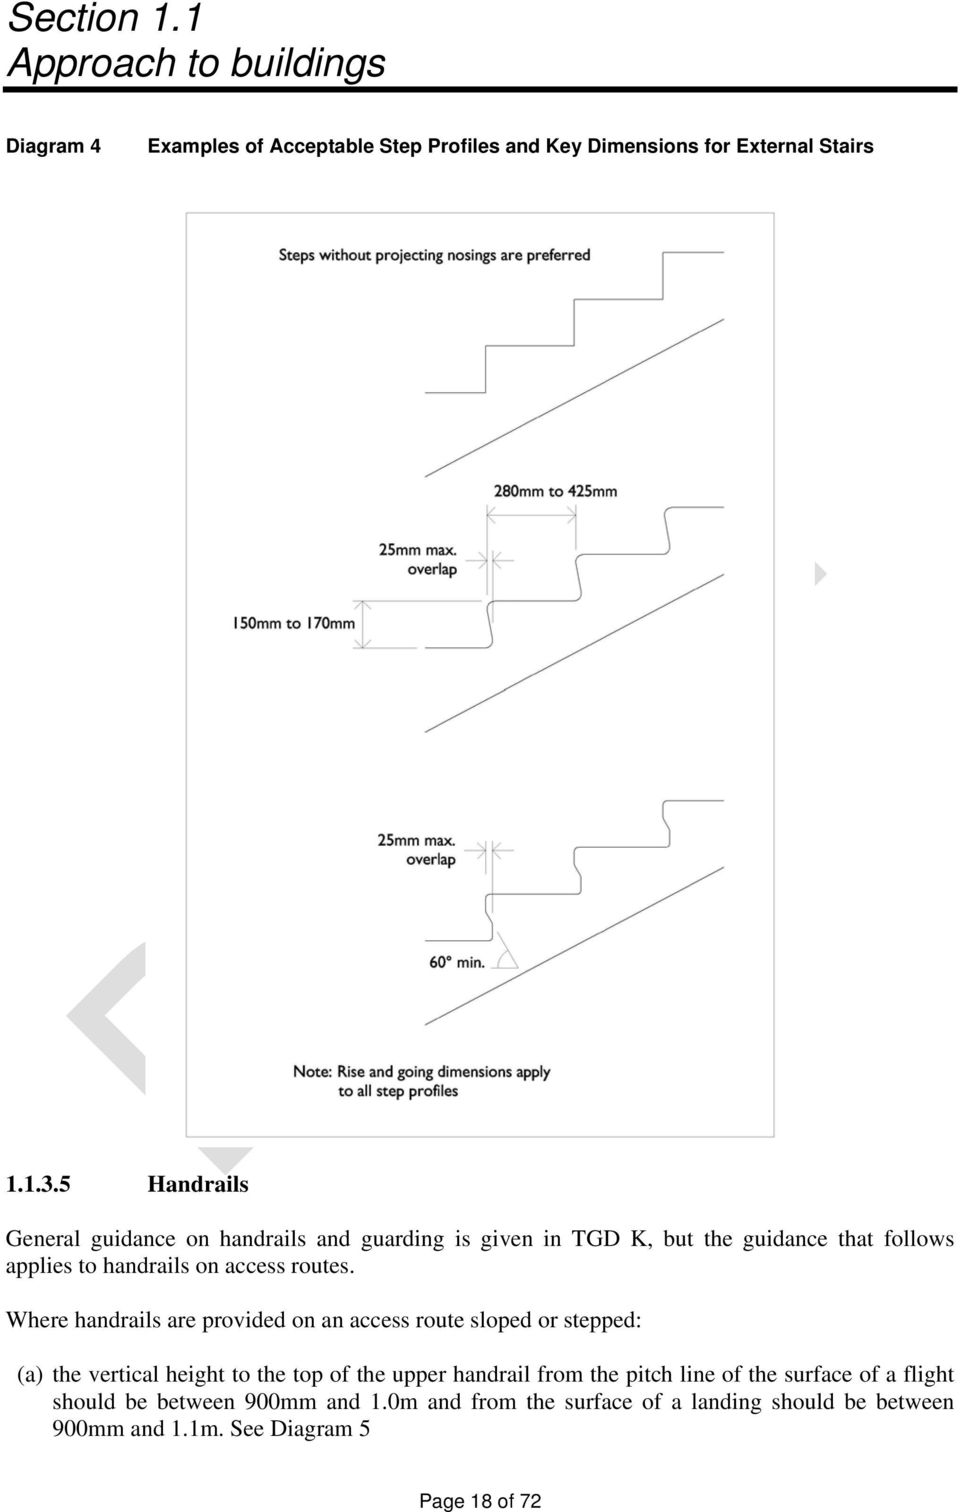 Where handrails are provided on an access route sloped or stepped: (a) the vertical height to the top of the upper handrail from the pitch